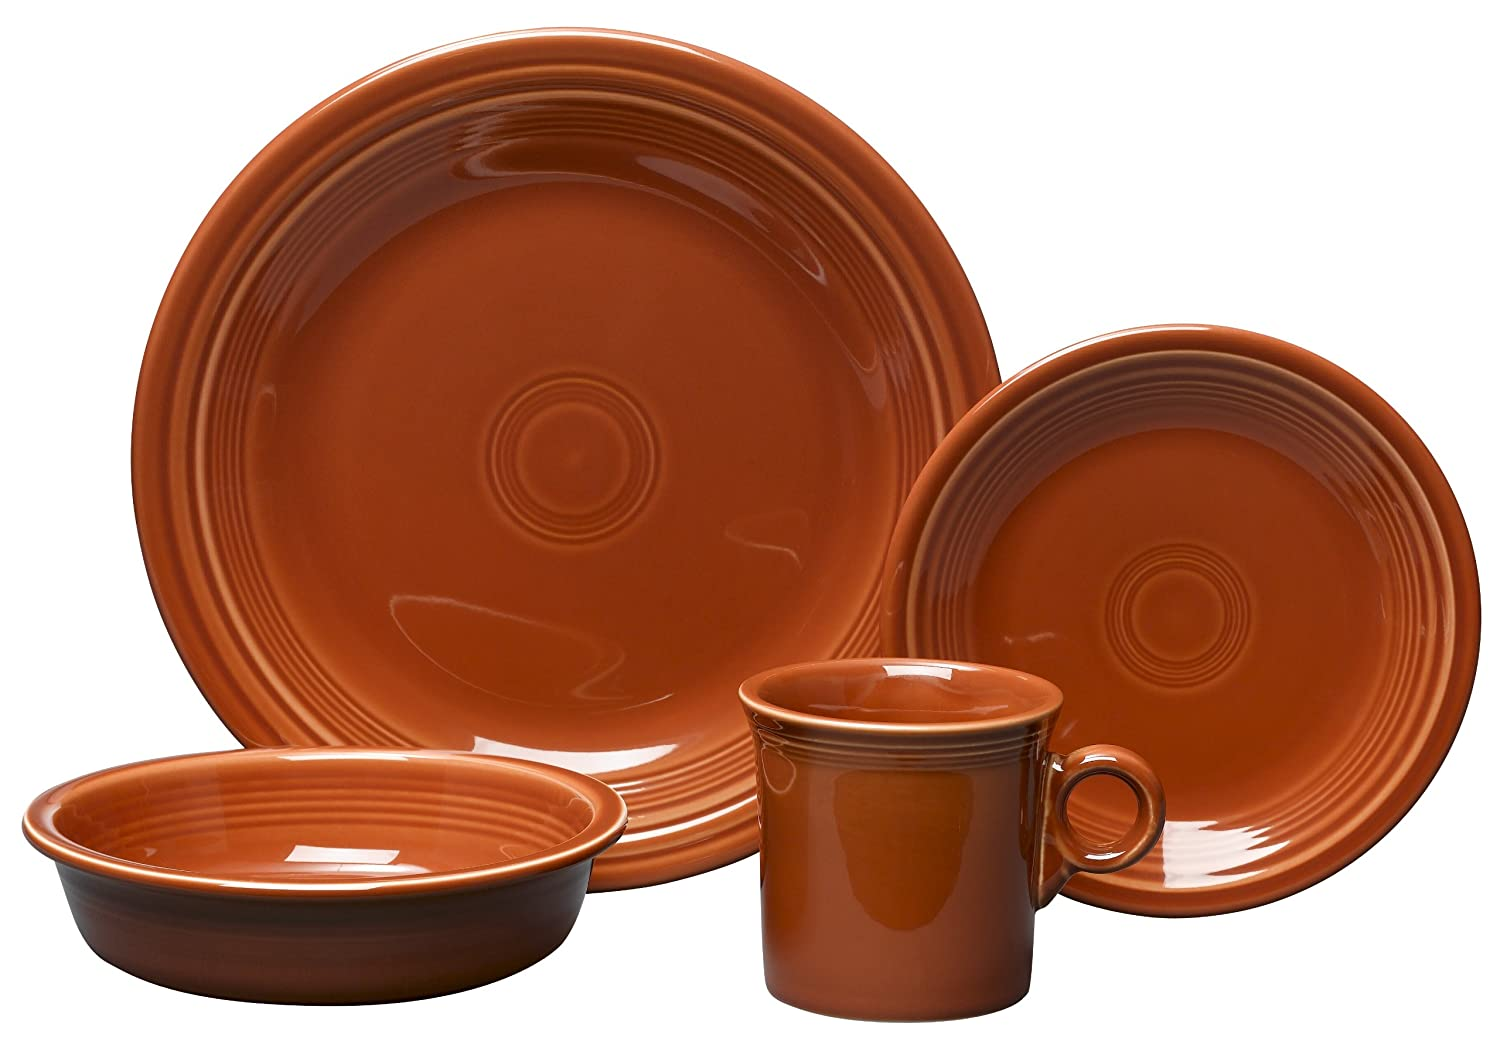 Amazon.com | Fiesta 4-Piece Place Setting Paprika Dinnerware Sets Dinnerware Sets  sc 1 st  Amazon.com : cheap fiesta dinnerware - pezcame.com